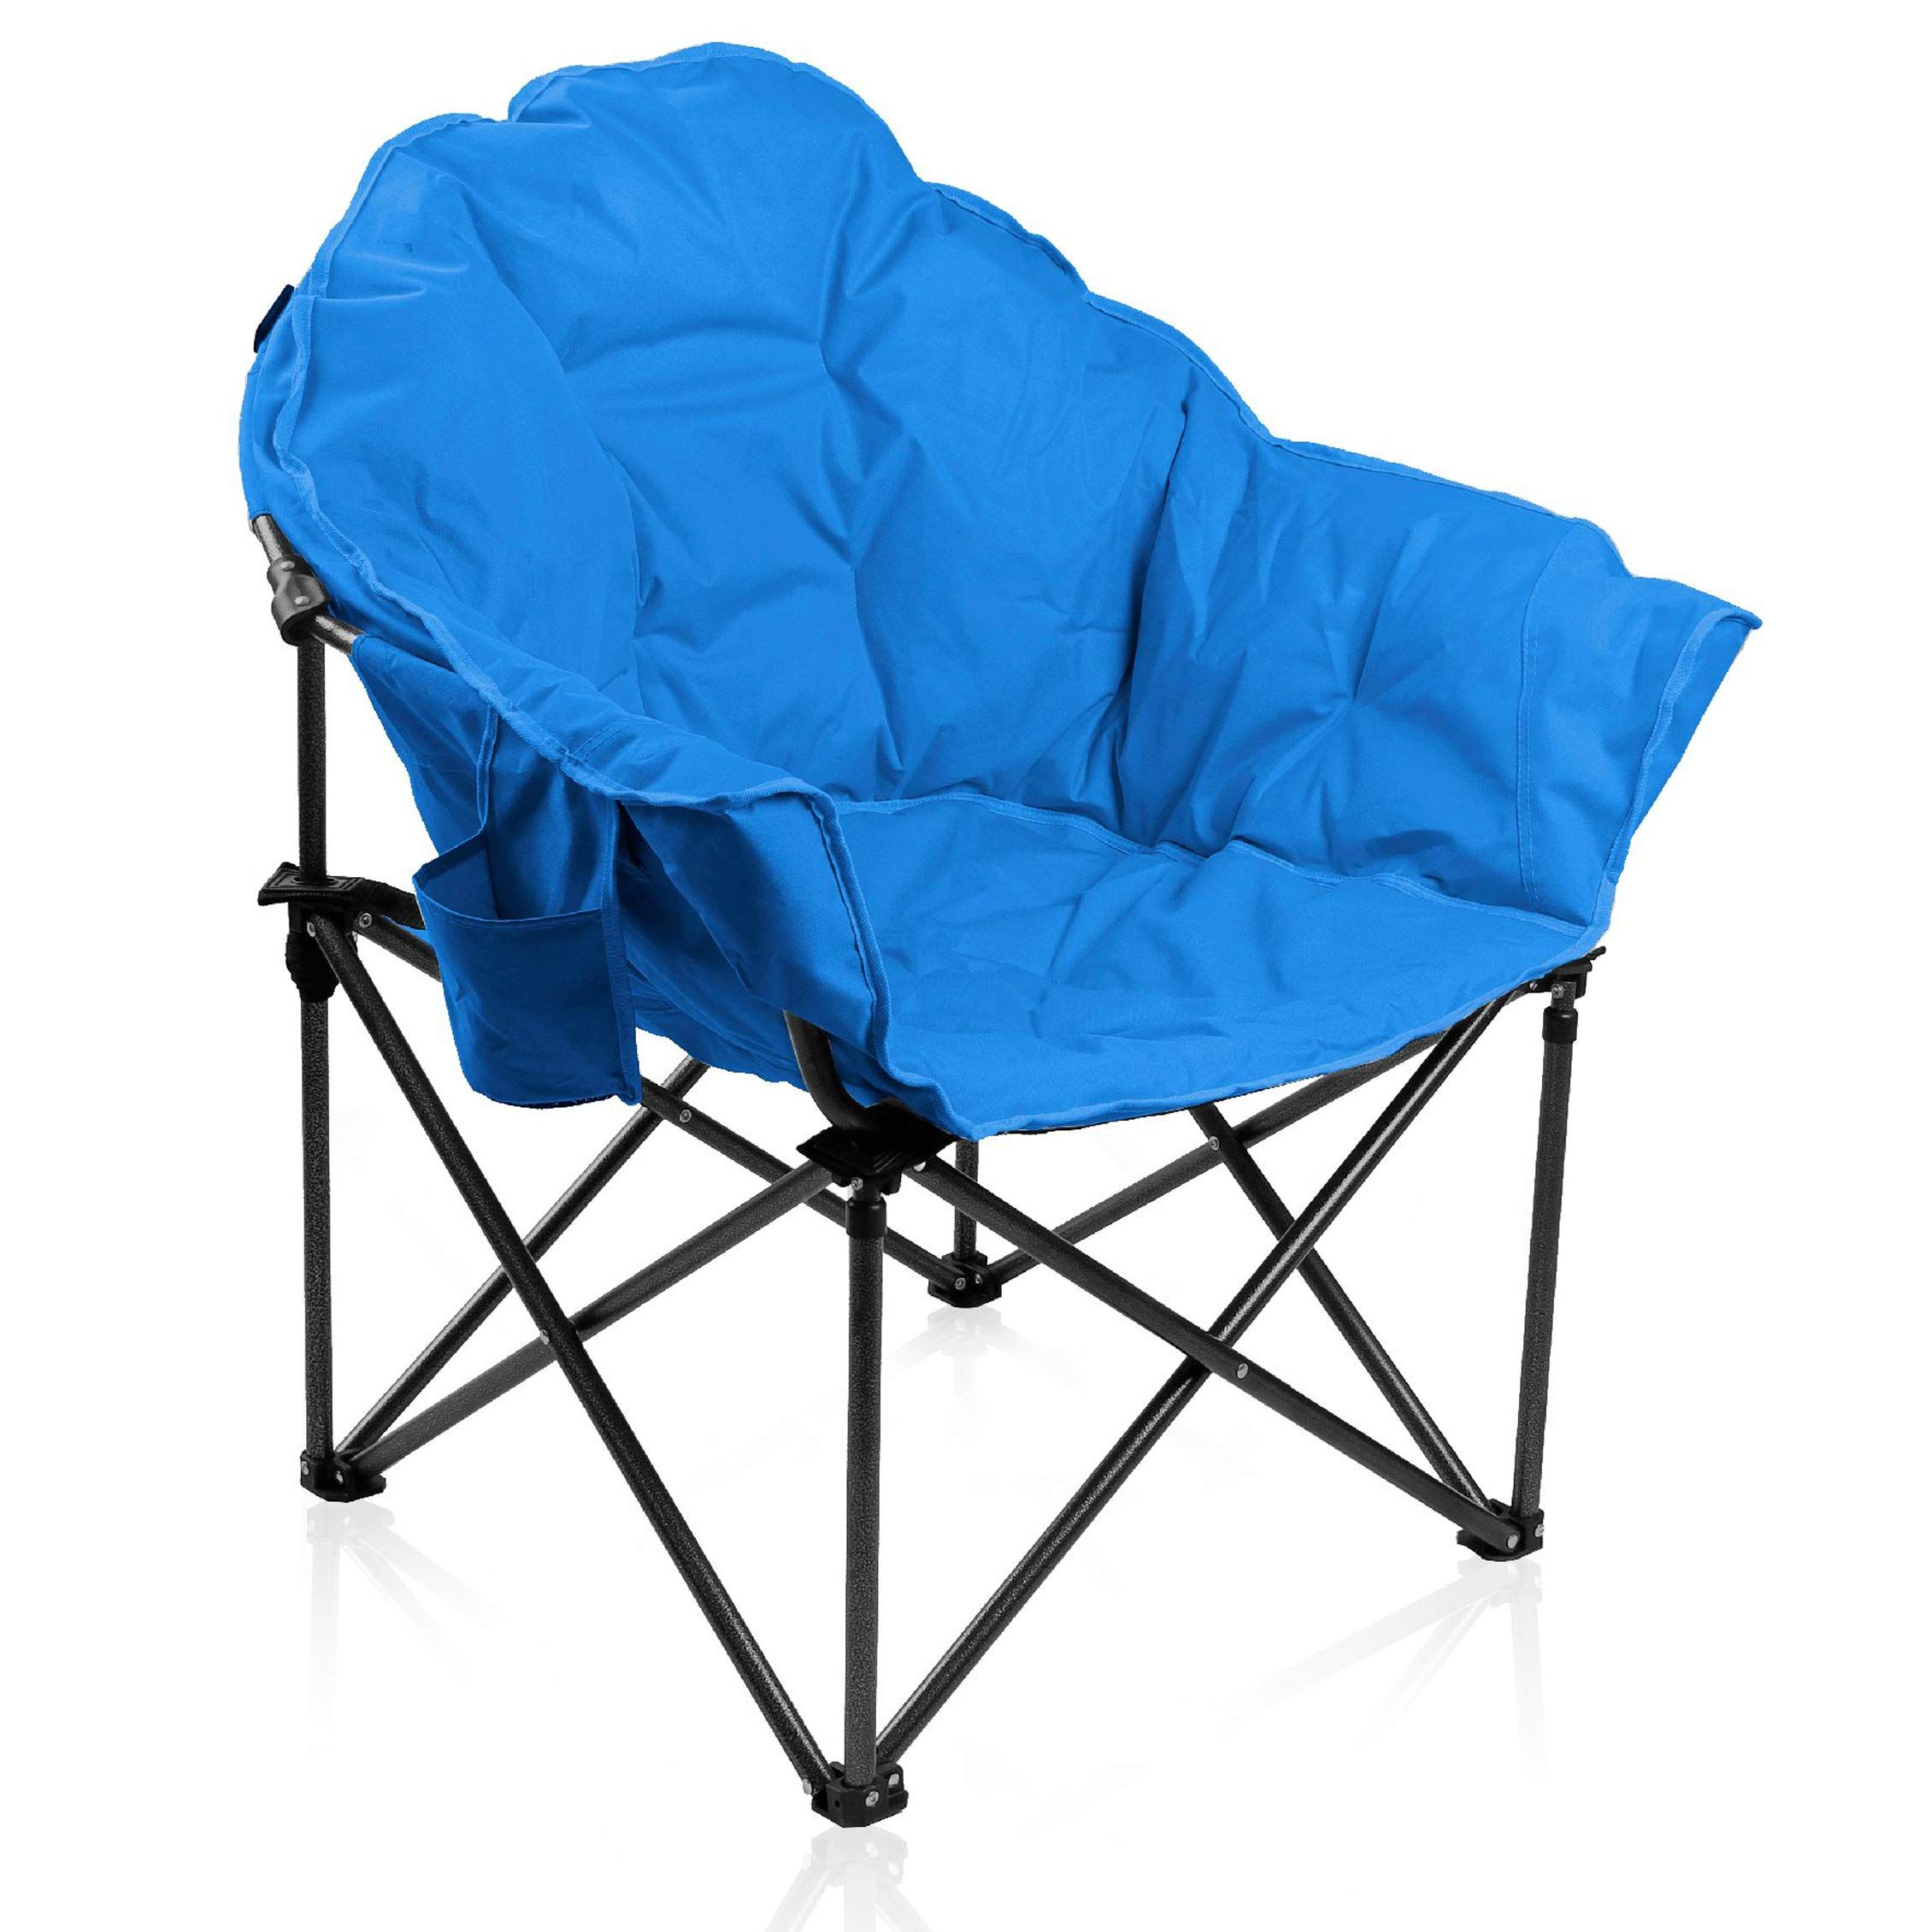 Alpha Camp Oversized Moon Saucer Chair With Folding Cup Holder And